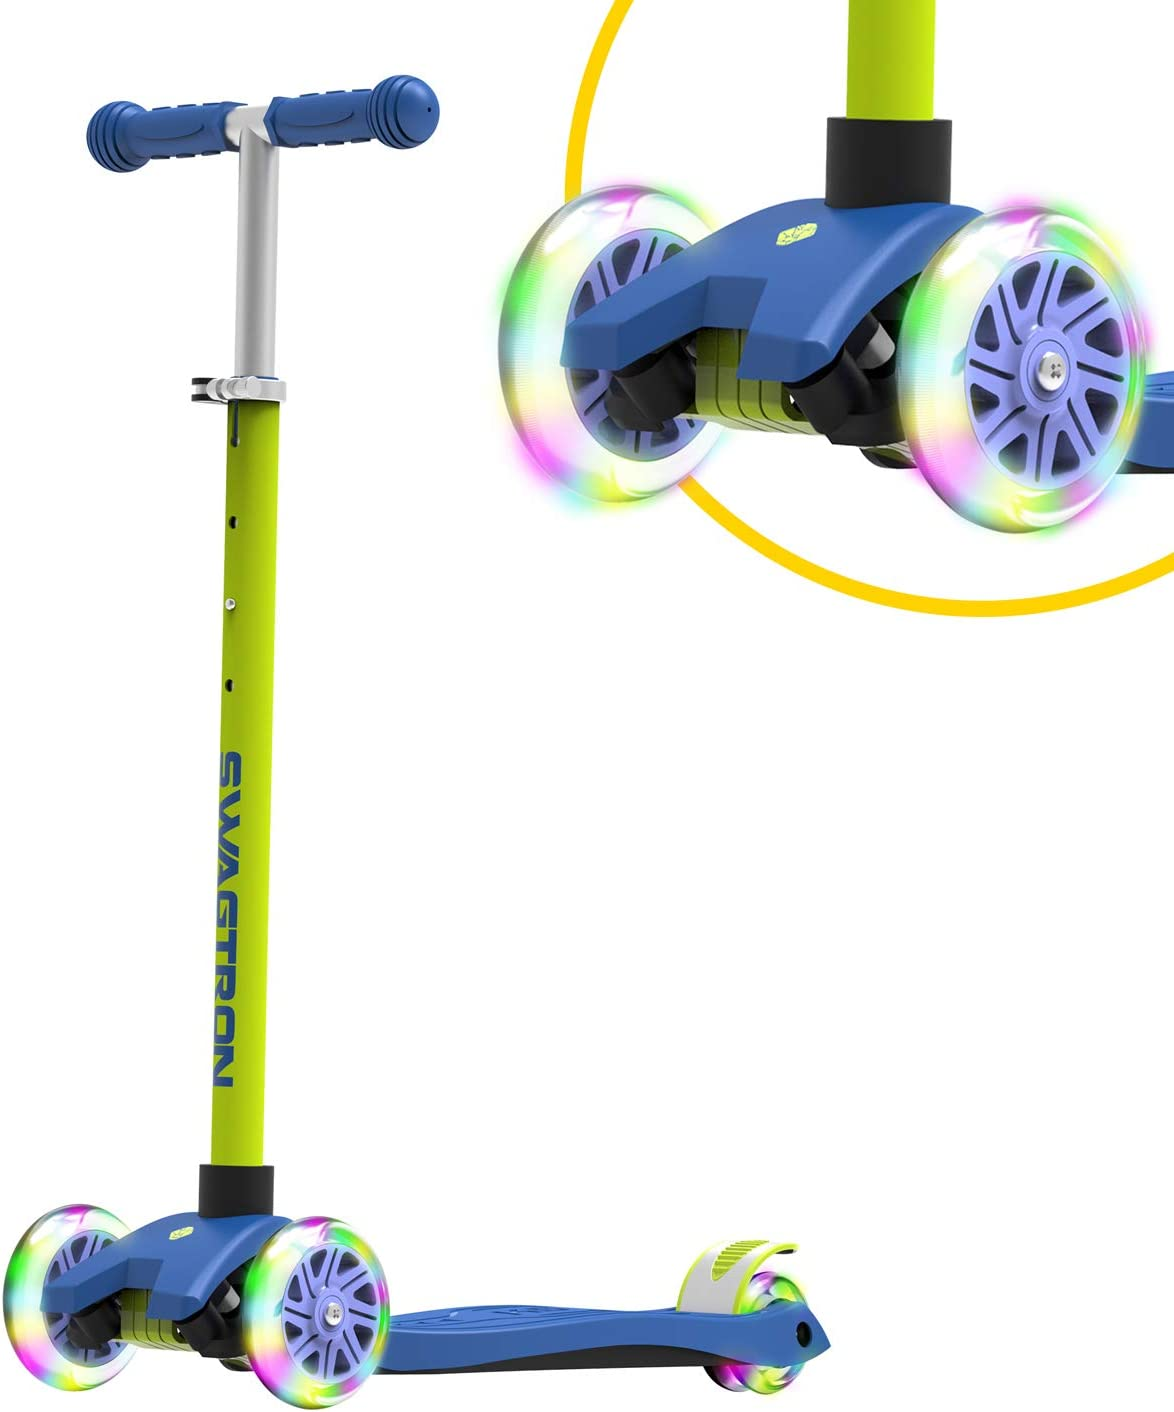 Swagtron K5 3-Wheel Kids Scooter with Light-Up Wheels | Quick Assembly | ASTM-Certified | Height-Adjustable for Boys or Girls Ages 3+